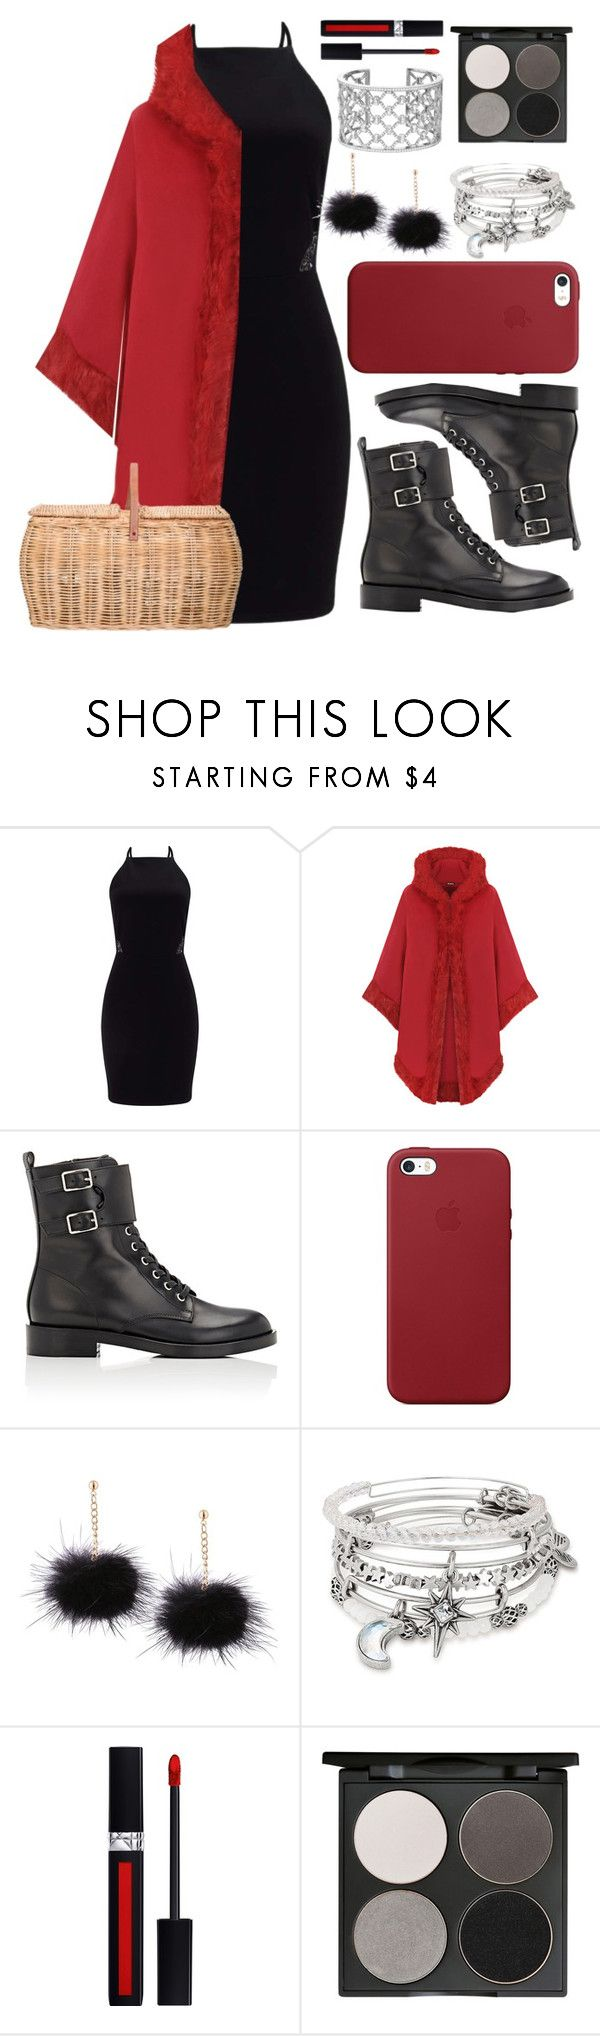 """Maloween Day 3: DIY Red Riding Hood Costume!"" by sisibff ❤ liked on Polyvore featuring Miss Selfridge, WearAll, Gianvito Rossi, Apple, Alex and Ani, Verdura, Christian Dior, Gorgeous Cosmetics and Bloomingville"